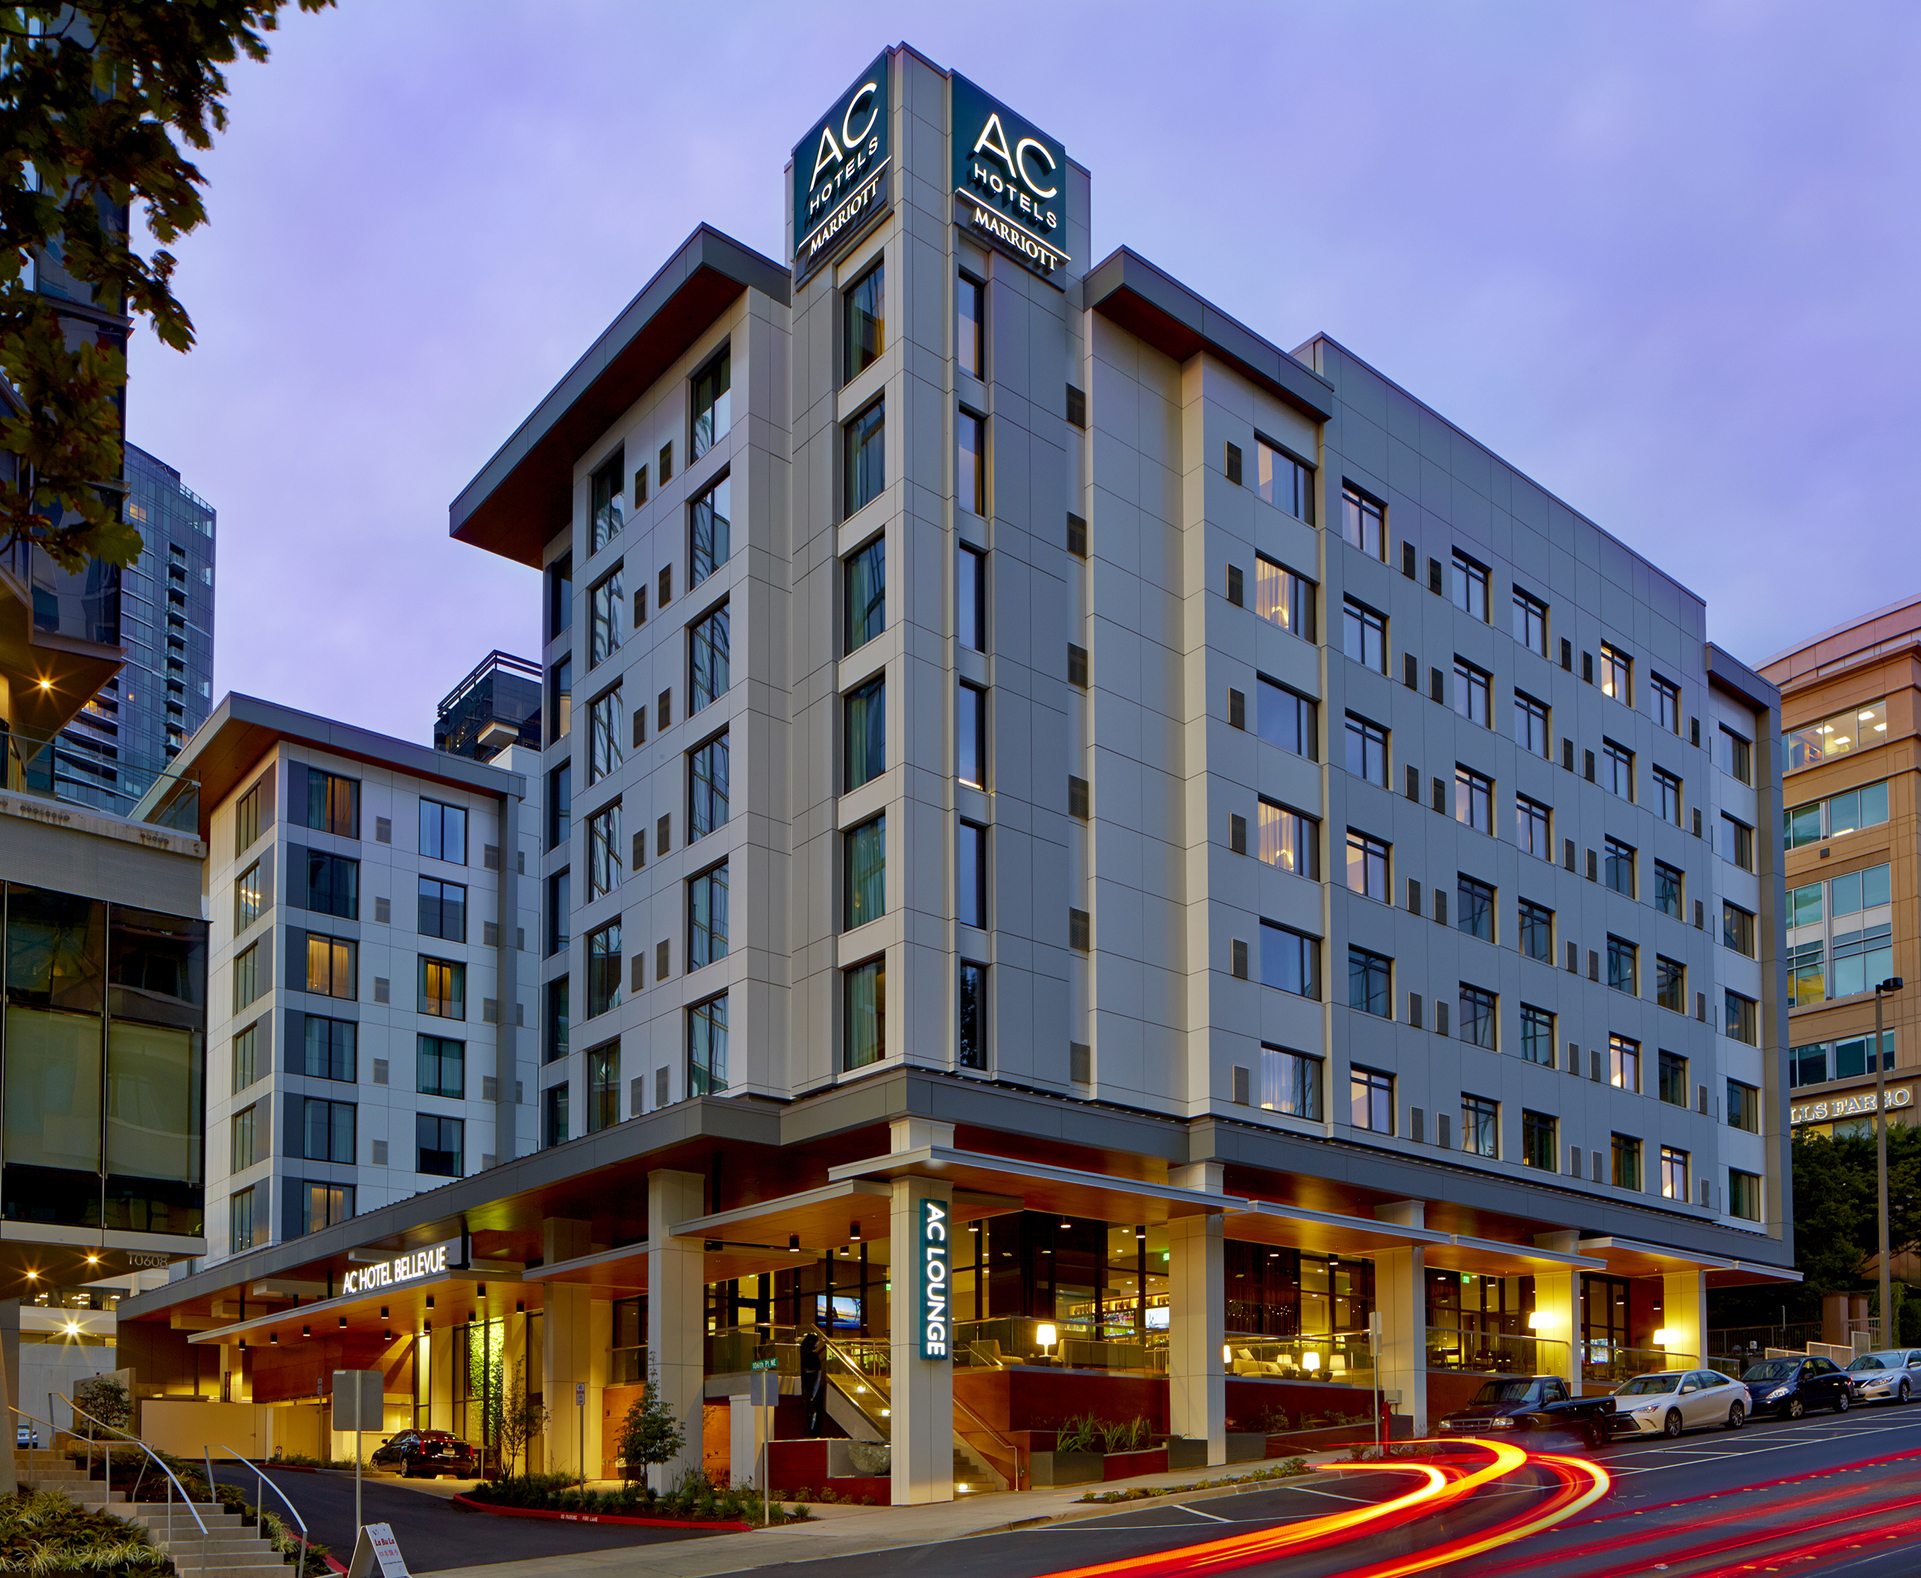 AC Hotel by Marriott Seattle Bellevue/Downtown - Bellevue, WA - High Street and its partners opened the AC Hotel by Marriott Seattle Bellevue/Downtown in August of 2017. The hotel is conveniently located near the central business district and some of the city's most popular attractions. Conduct business in distinguished meeting spaces fitted with advanced AV equipment. In the evenings, come home to the AC Lounge for craft beers, wines & tapas, or explore dozens of award-winning restaurants nearby. Whether you're in town for business or pleasure, we elevate your travel and celebrate the beauty of the small details. High Street exited this investment in December 2017 with a sale to Aju, a South Korean investment conglomerate.